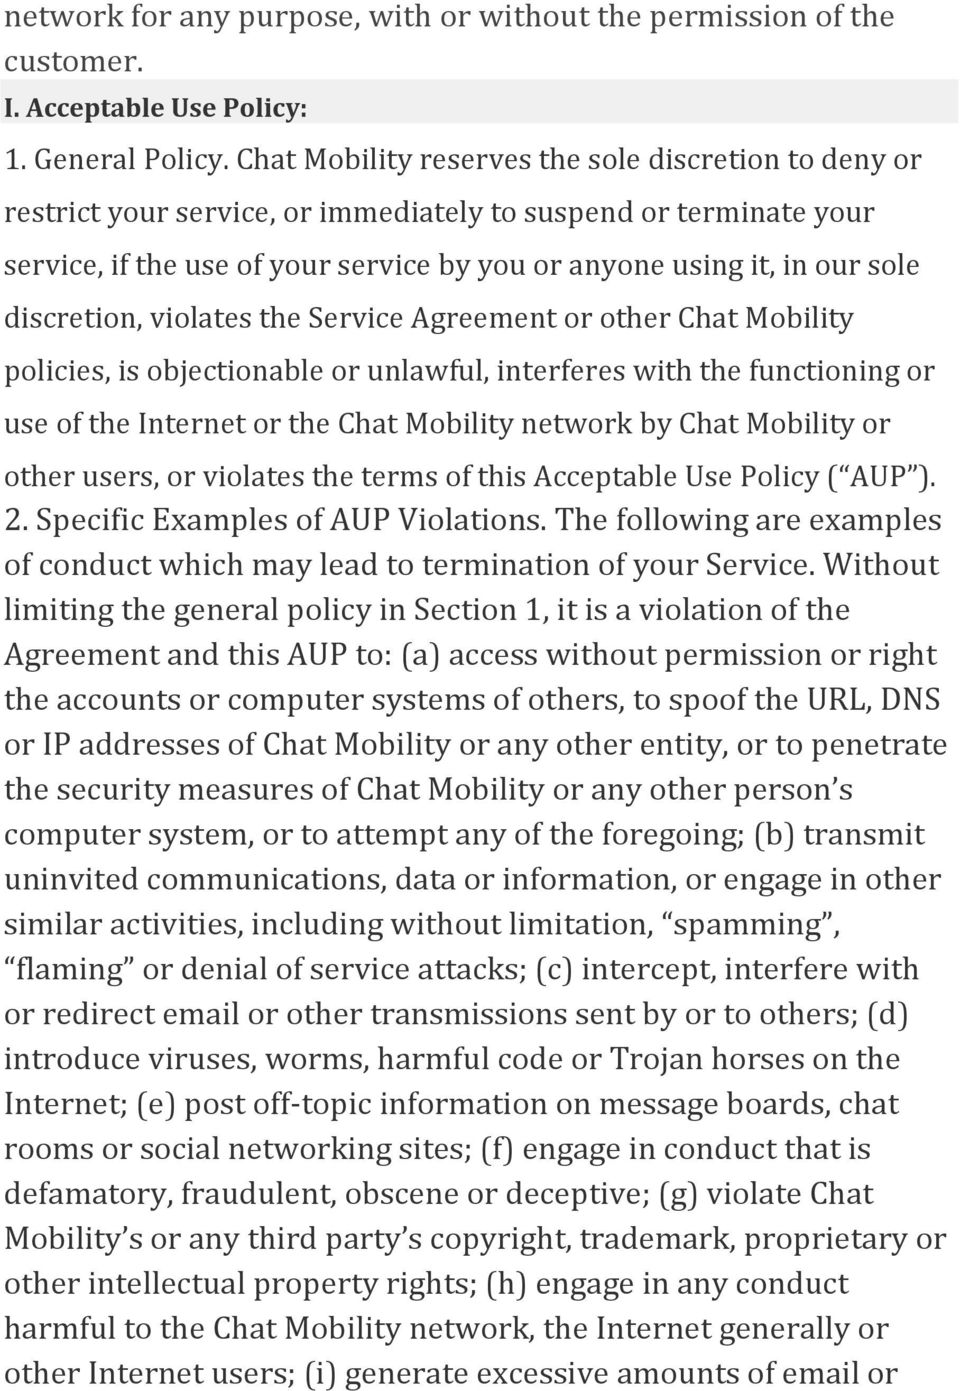 discretion, violates the Service Agreement or other Chat Mobility policies, is objectionable or unlawful, interferes with the functioning or use of the Internet or the Chat Mobility network by Chat